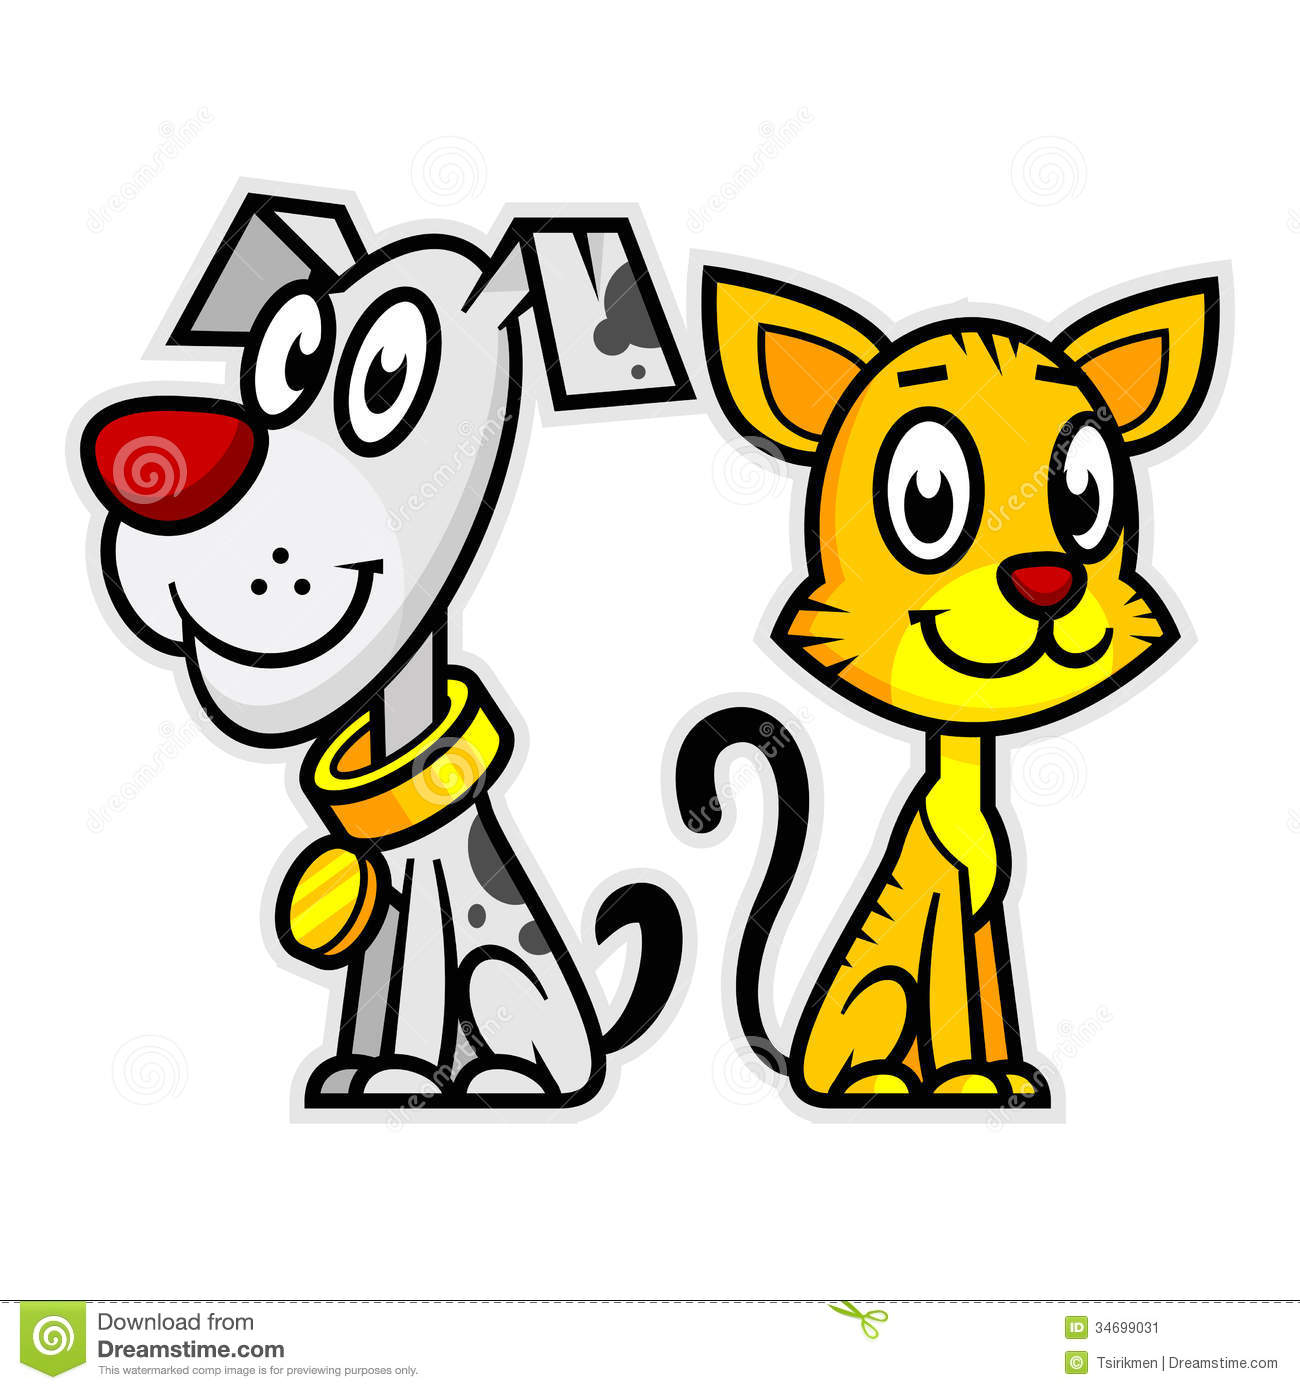 Smiling Dog And Cat Stock Image - Image: 34699031